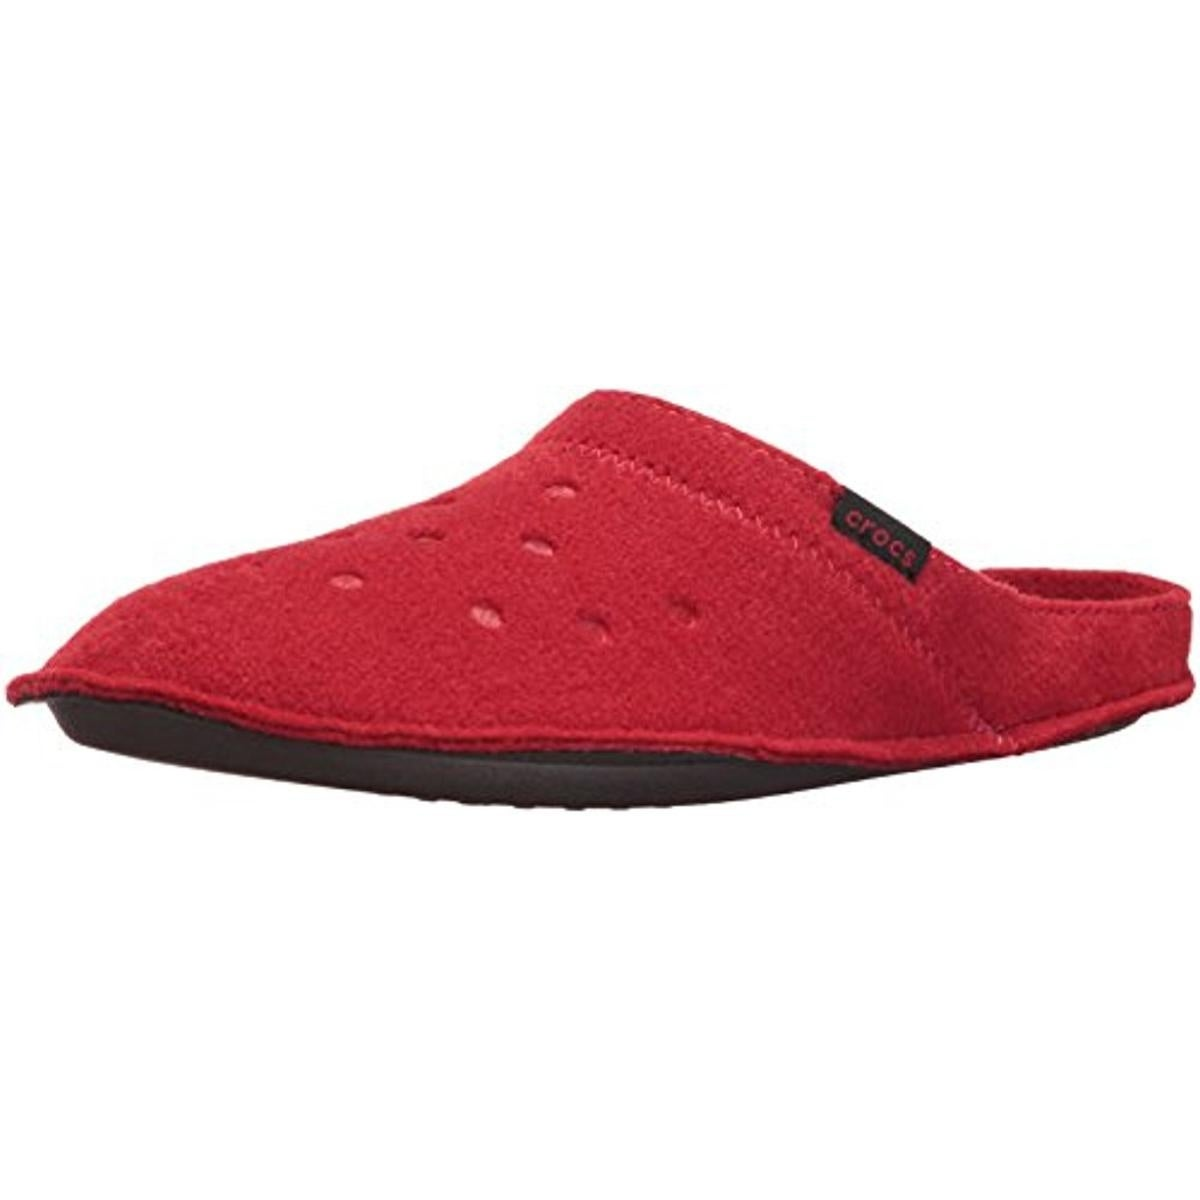 8b2a62b04cde Shop Crocs Mens Classic Mule Slippers Textured Lined - Free Shipping ...